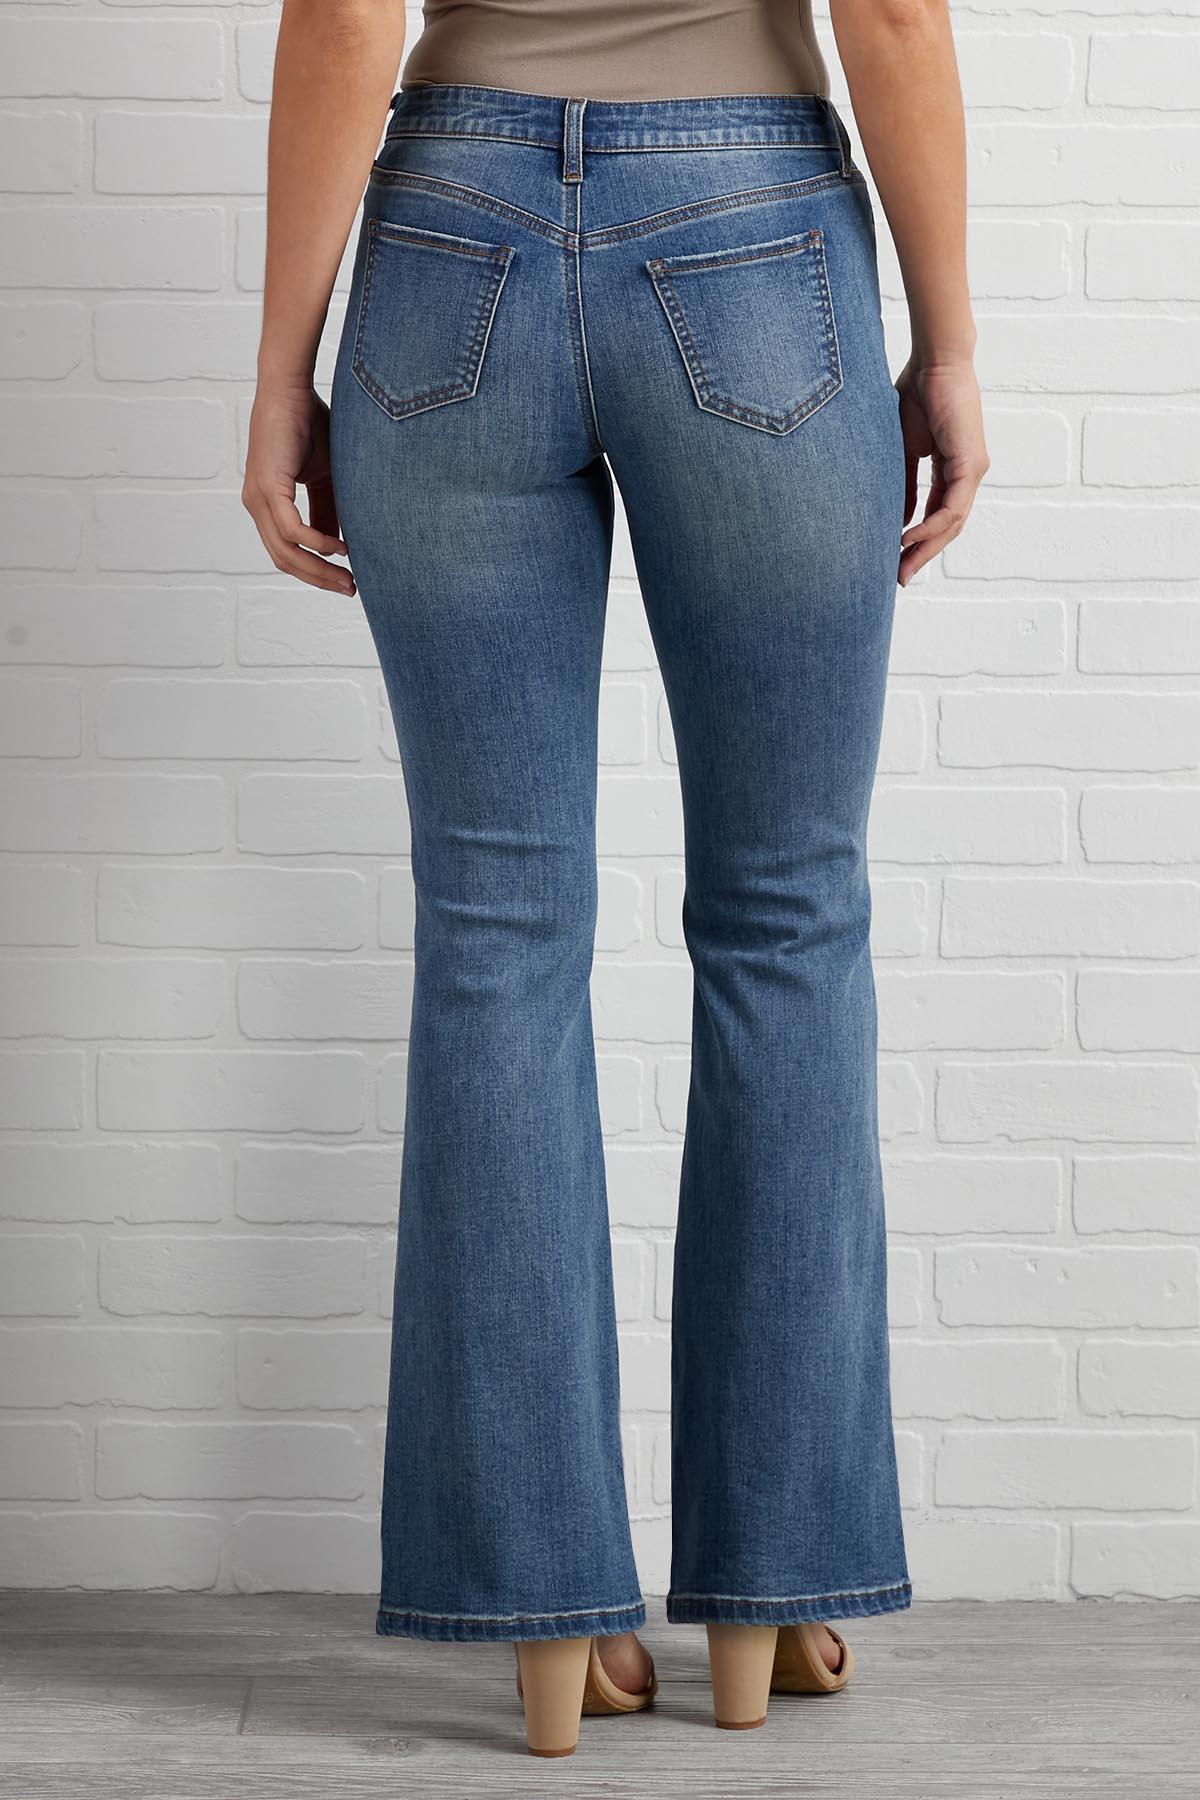 Slither Here Jeans